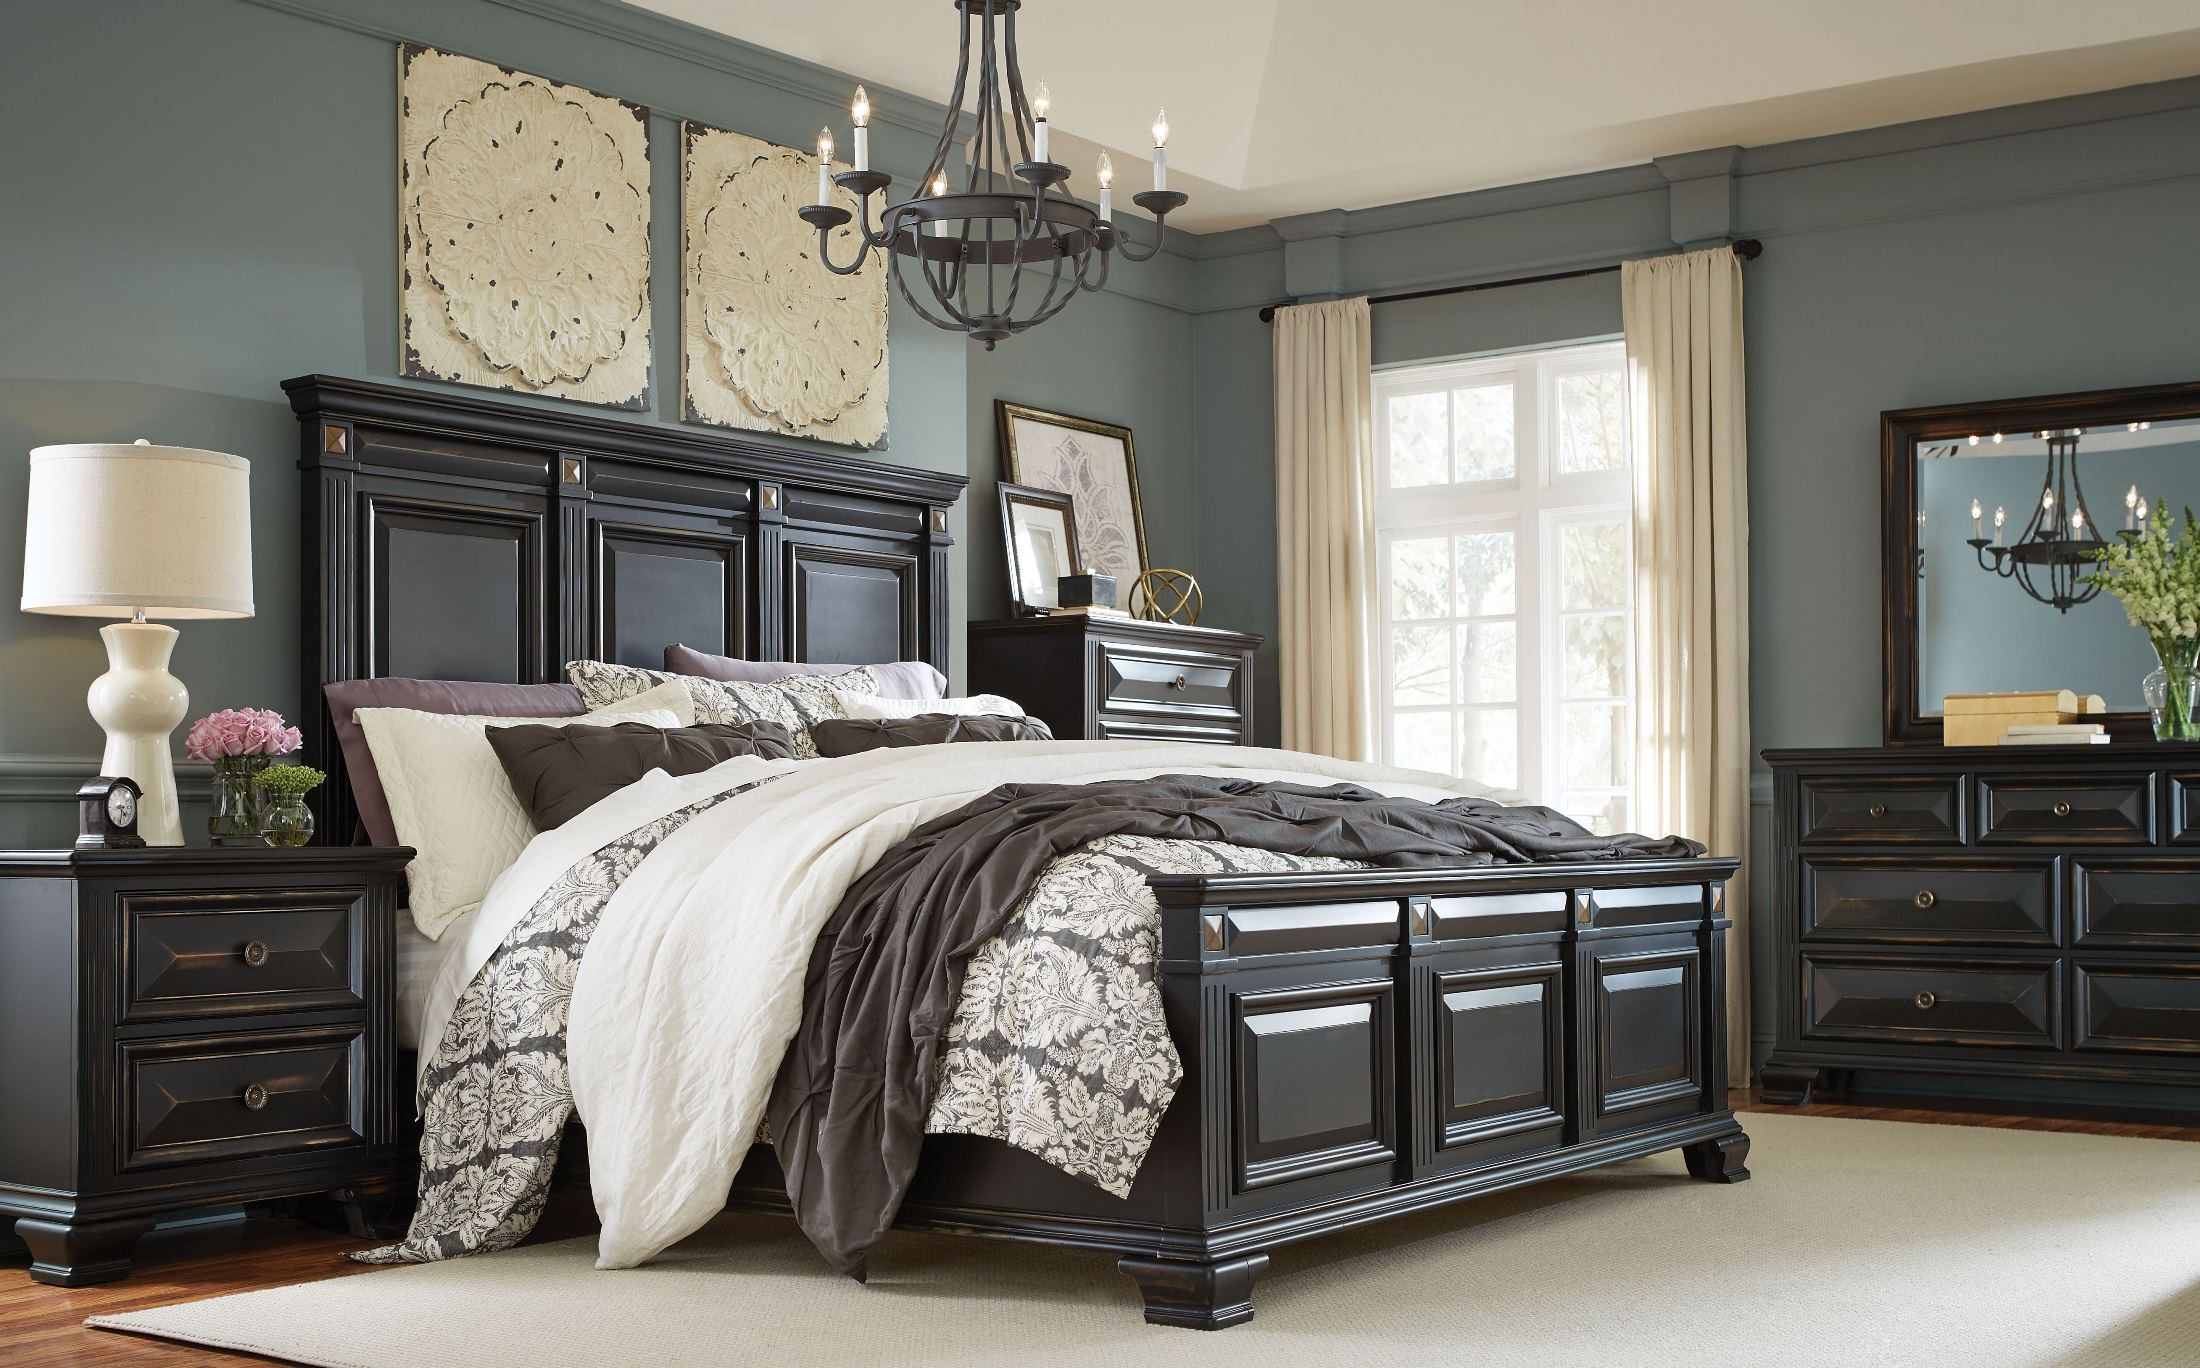 Passages vintage black panel bedroom set from standard for Where to get bedroom furniture